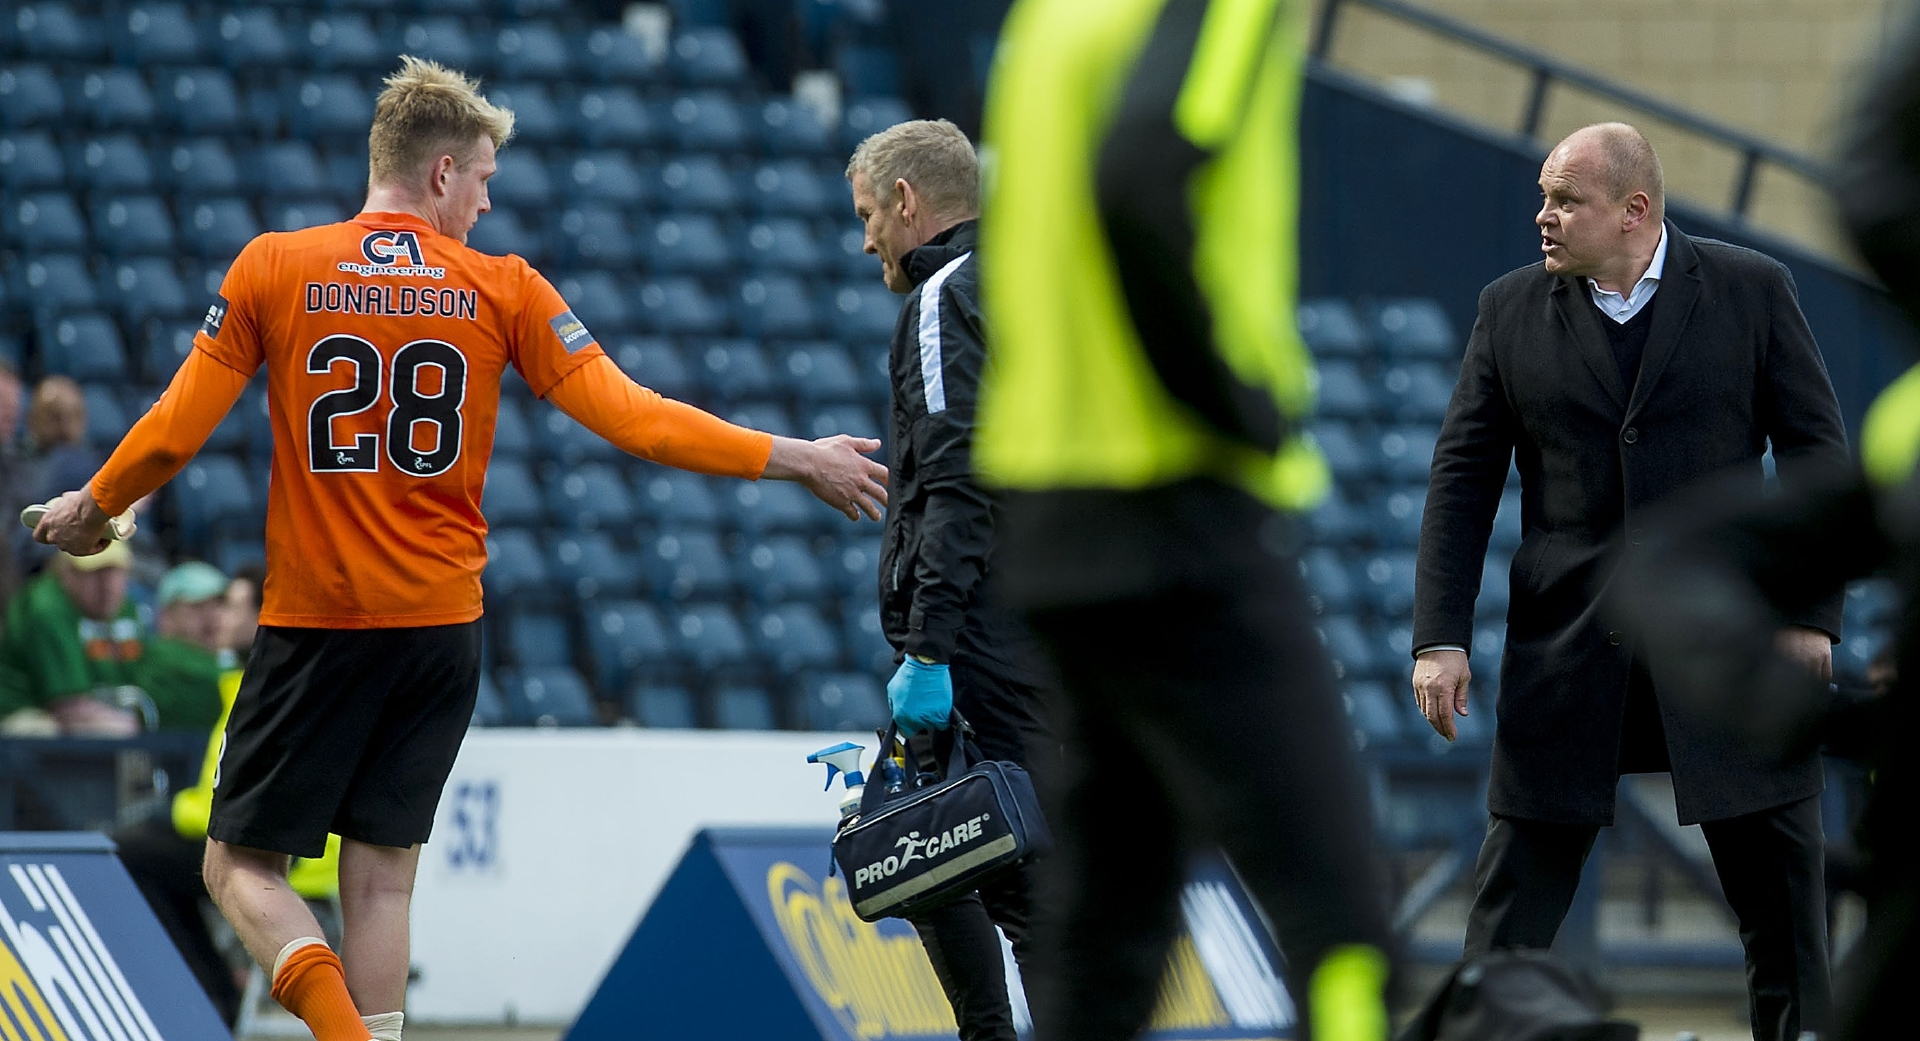 Mixu Paatelainen (right) has words with the injured Coll Donaldson during the semi-final.